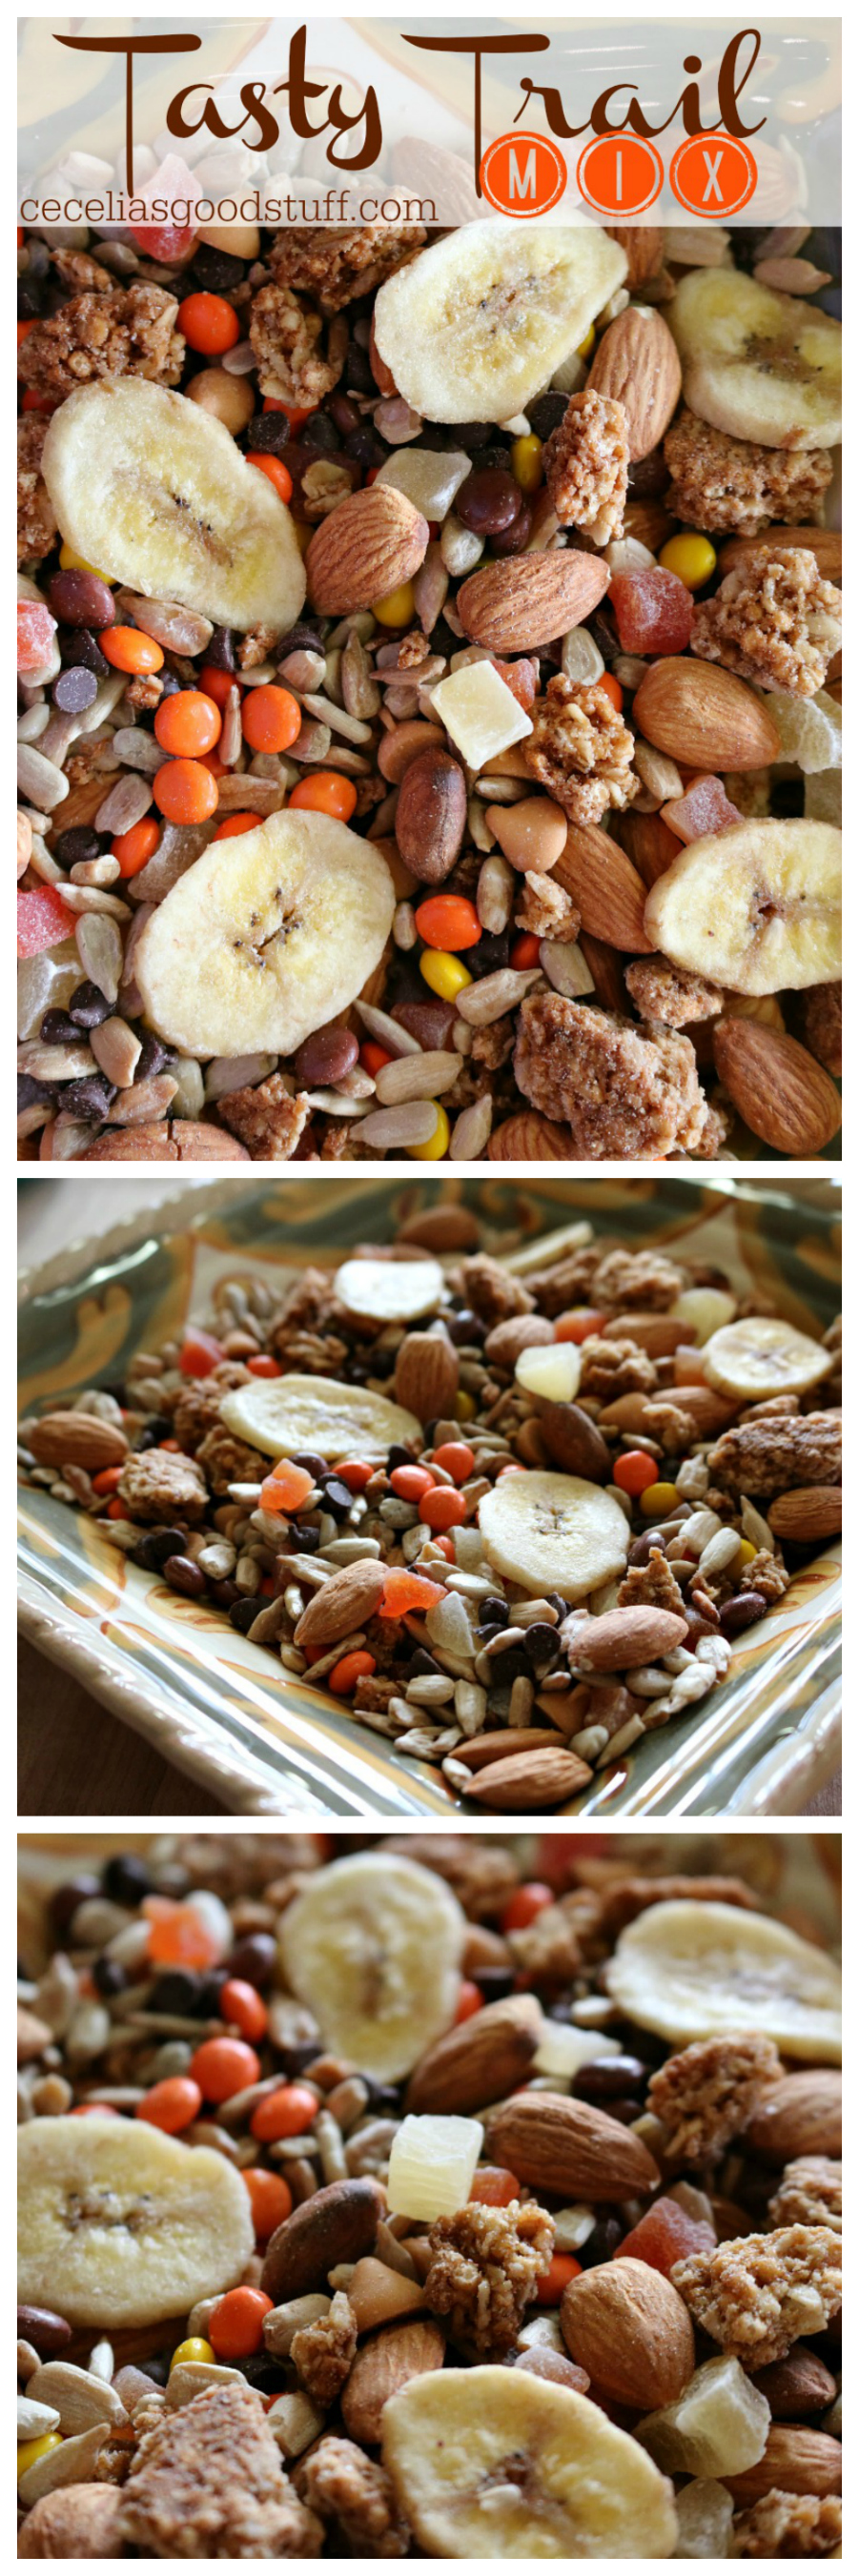 Tasty Trail Mix Healthy Kids Snacks CeceliasGoodStuff.com Good Food for Good People